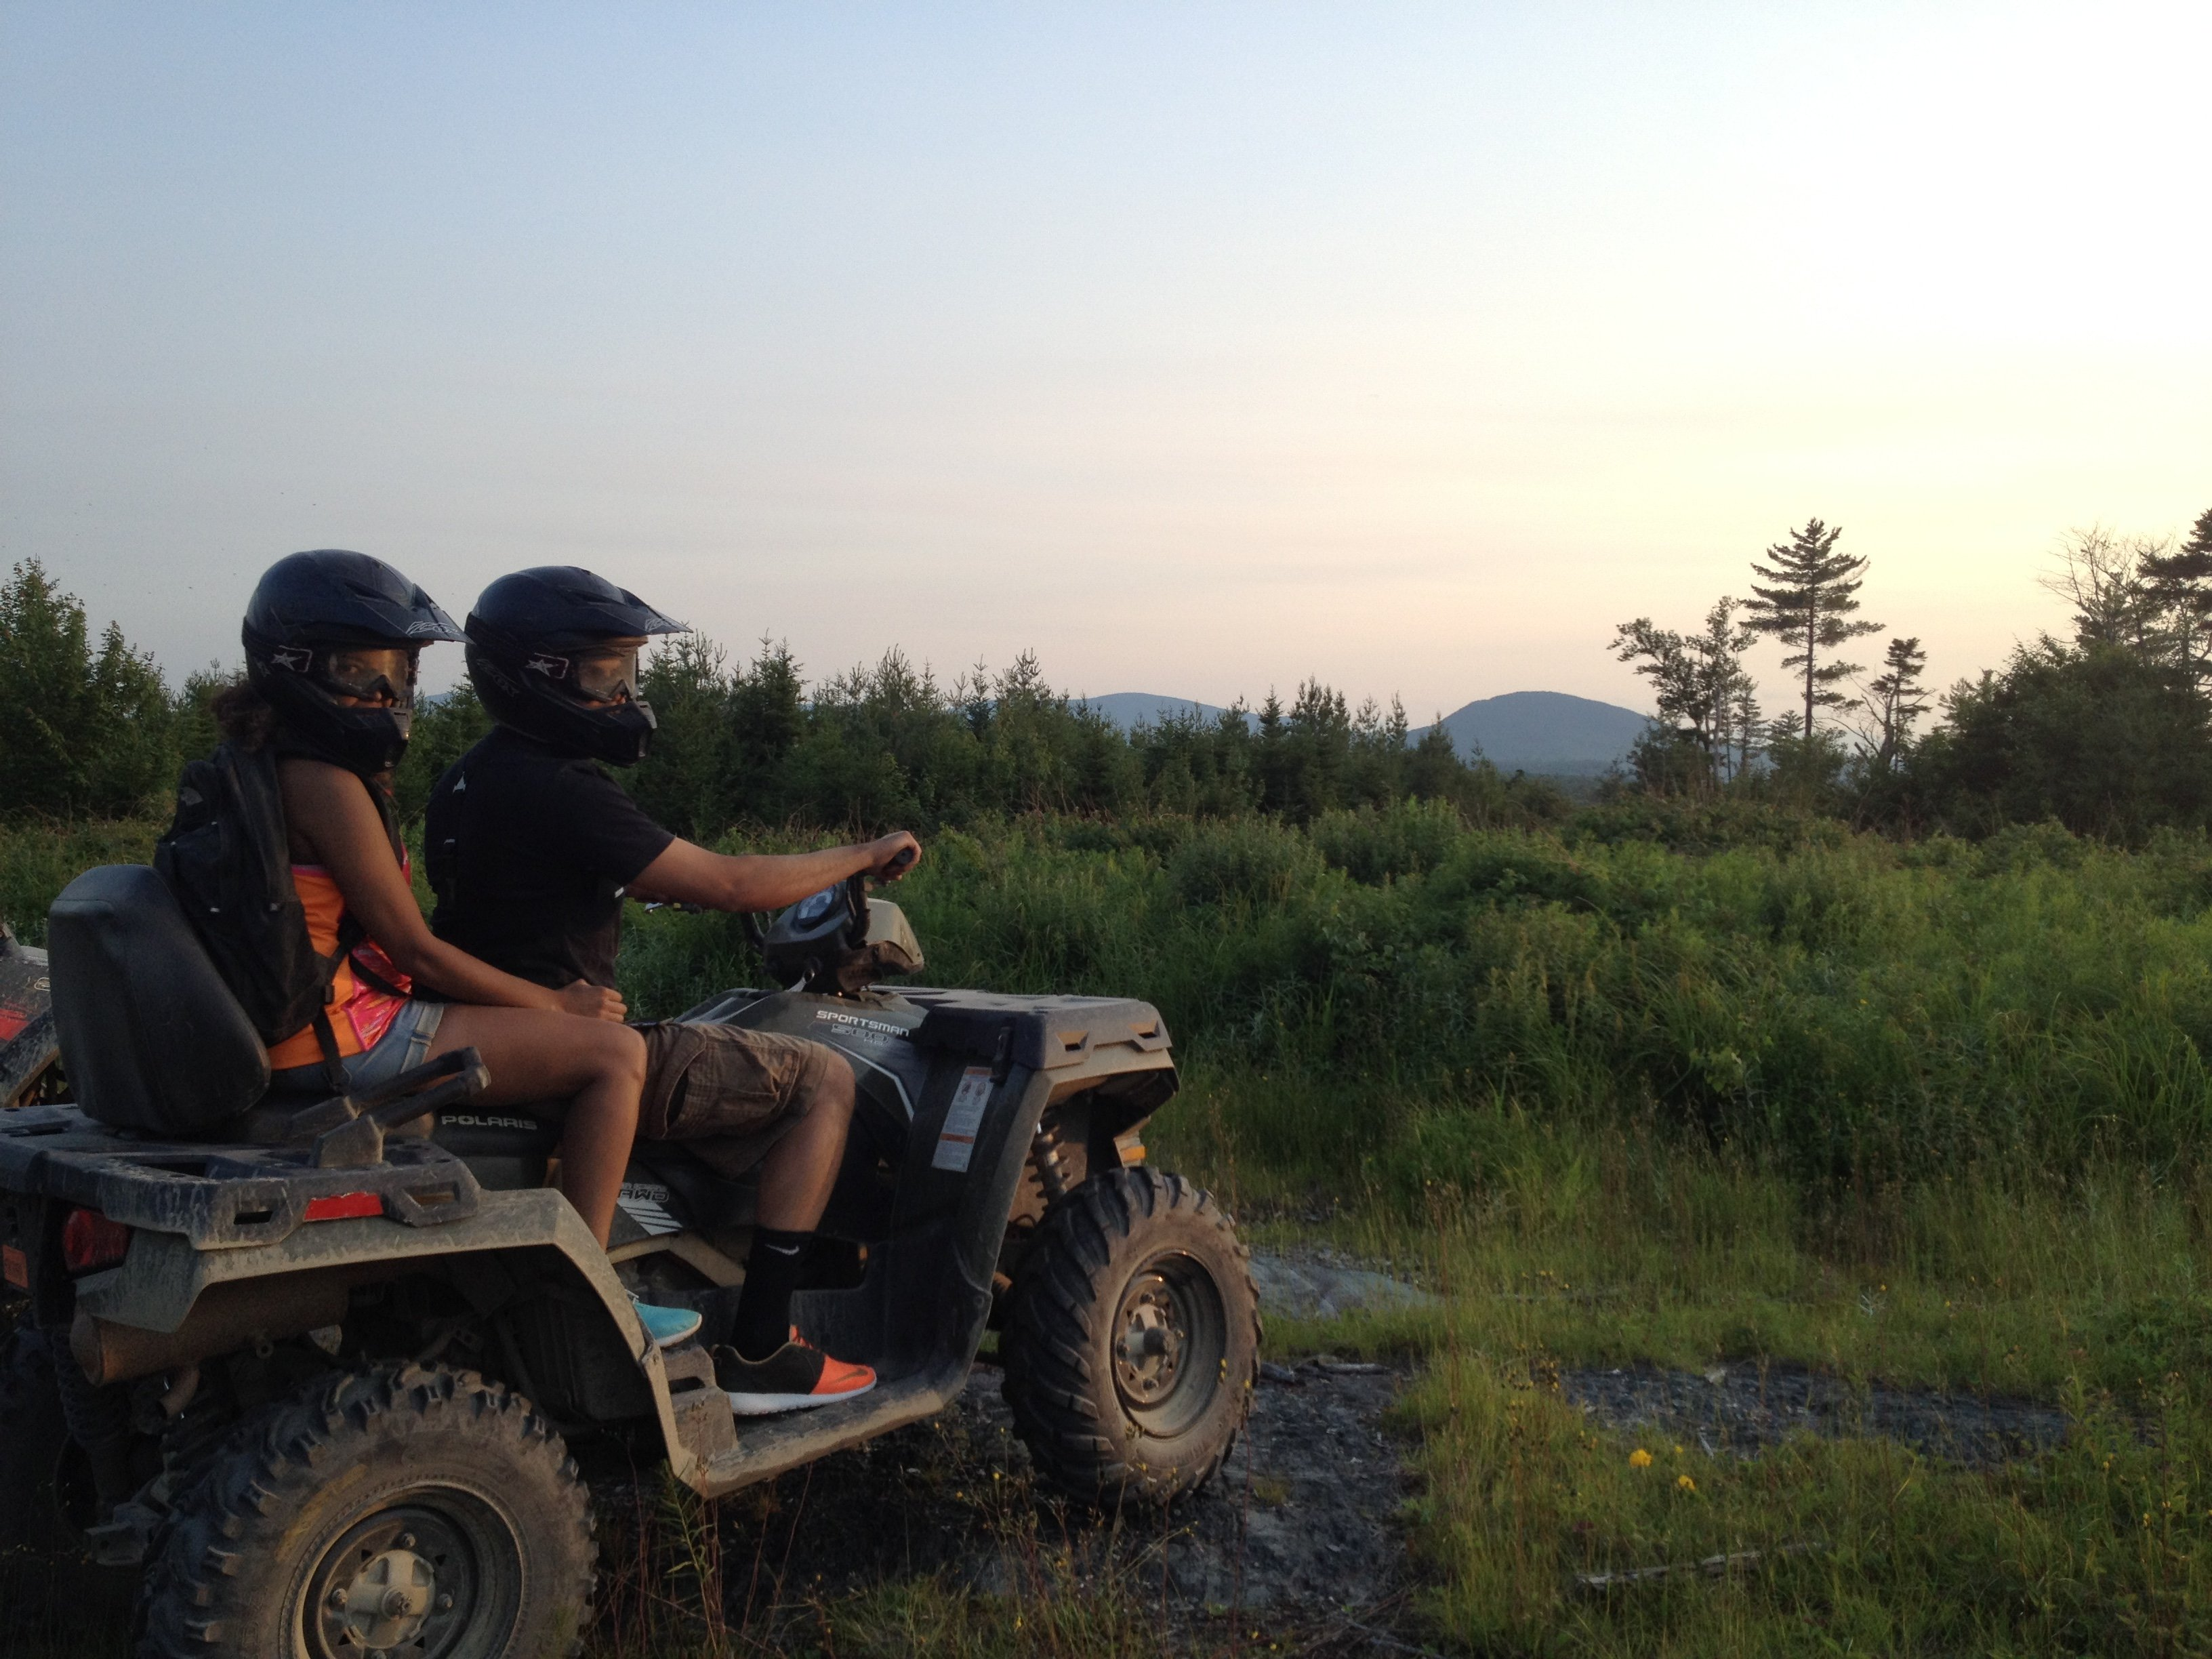 Sunset tours offer the thrill of riding in the later evening hours on an all-inclusive two hour trip.